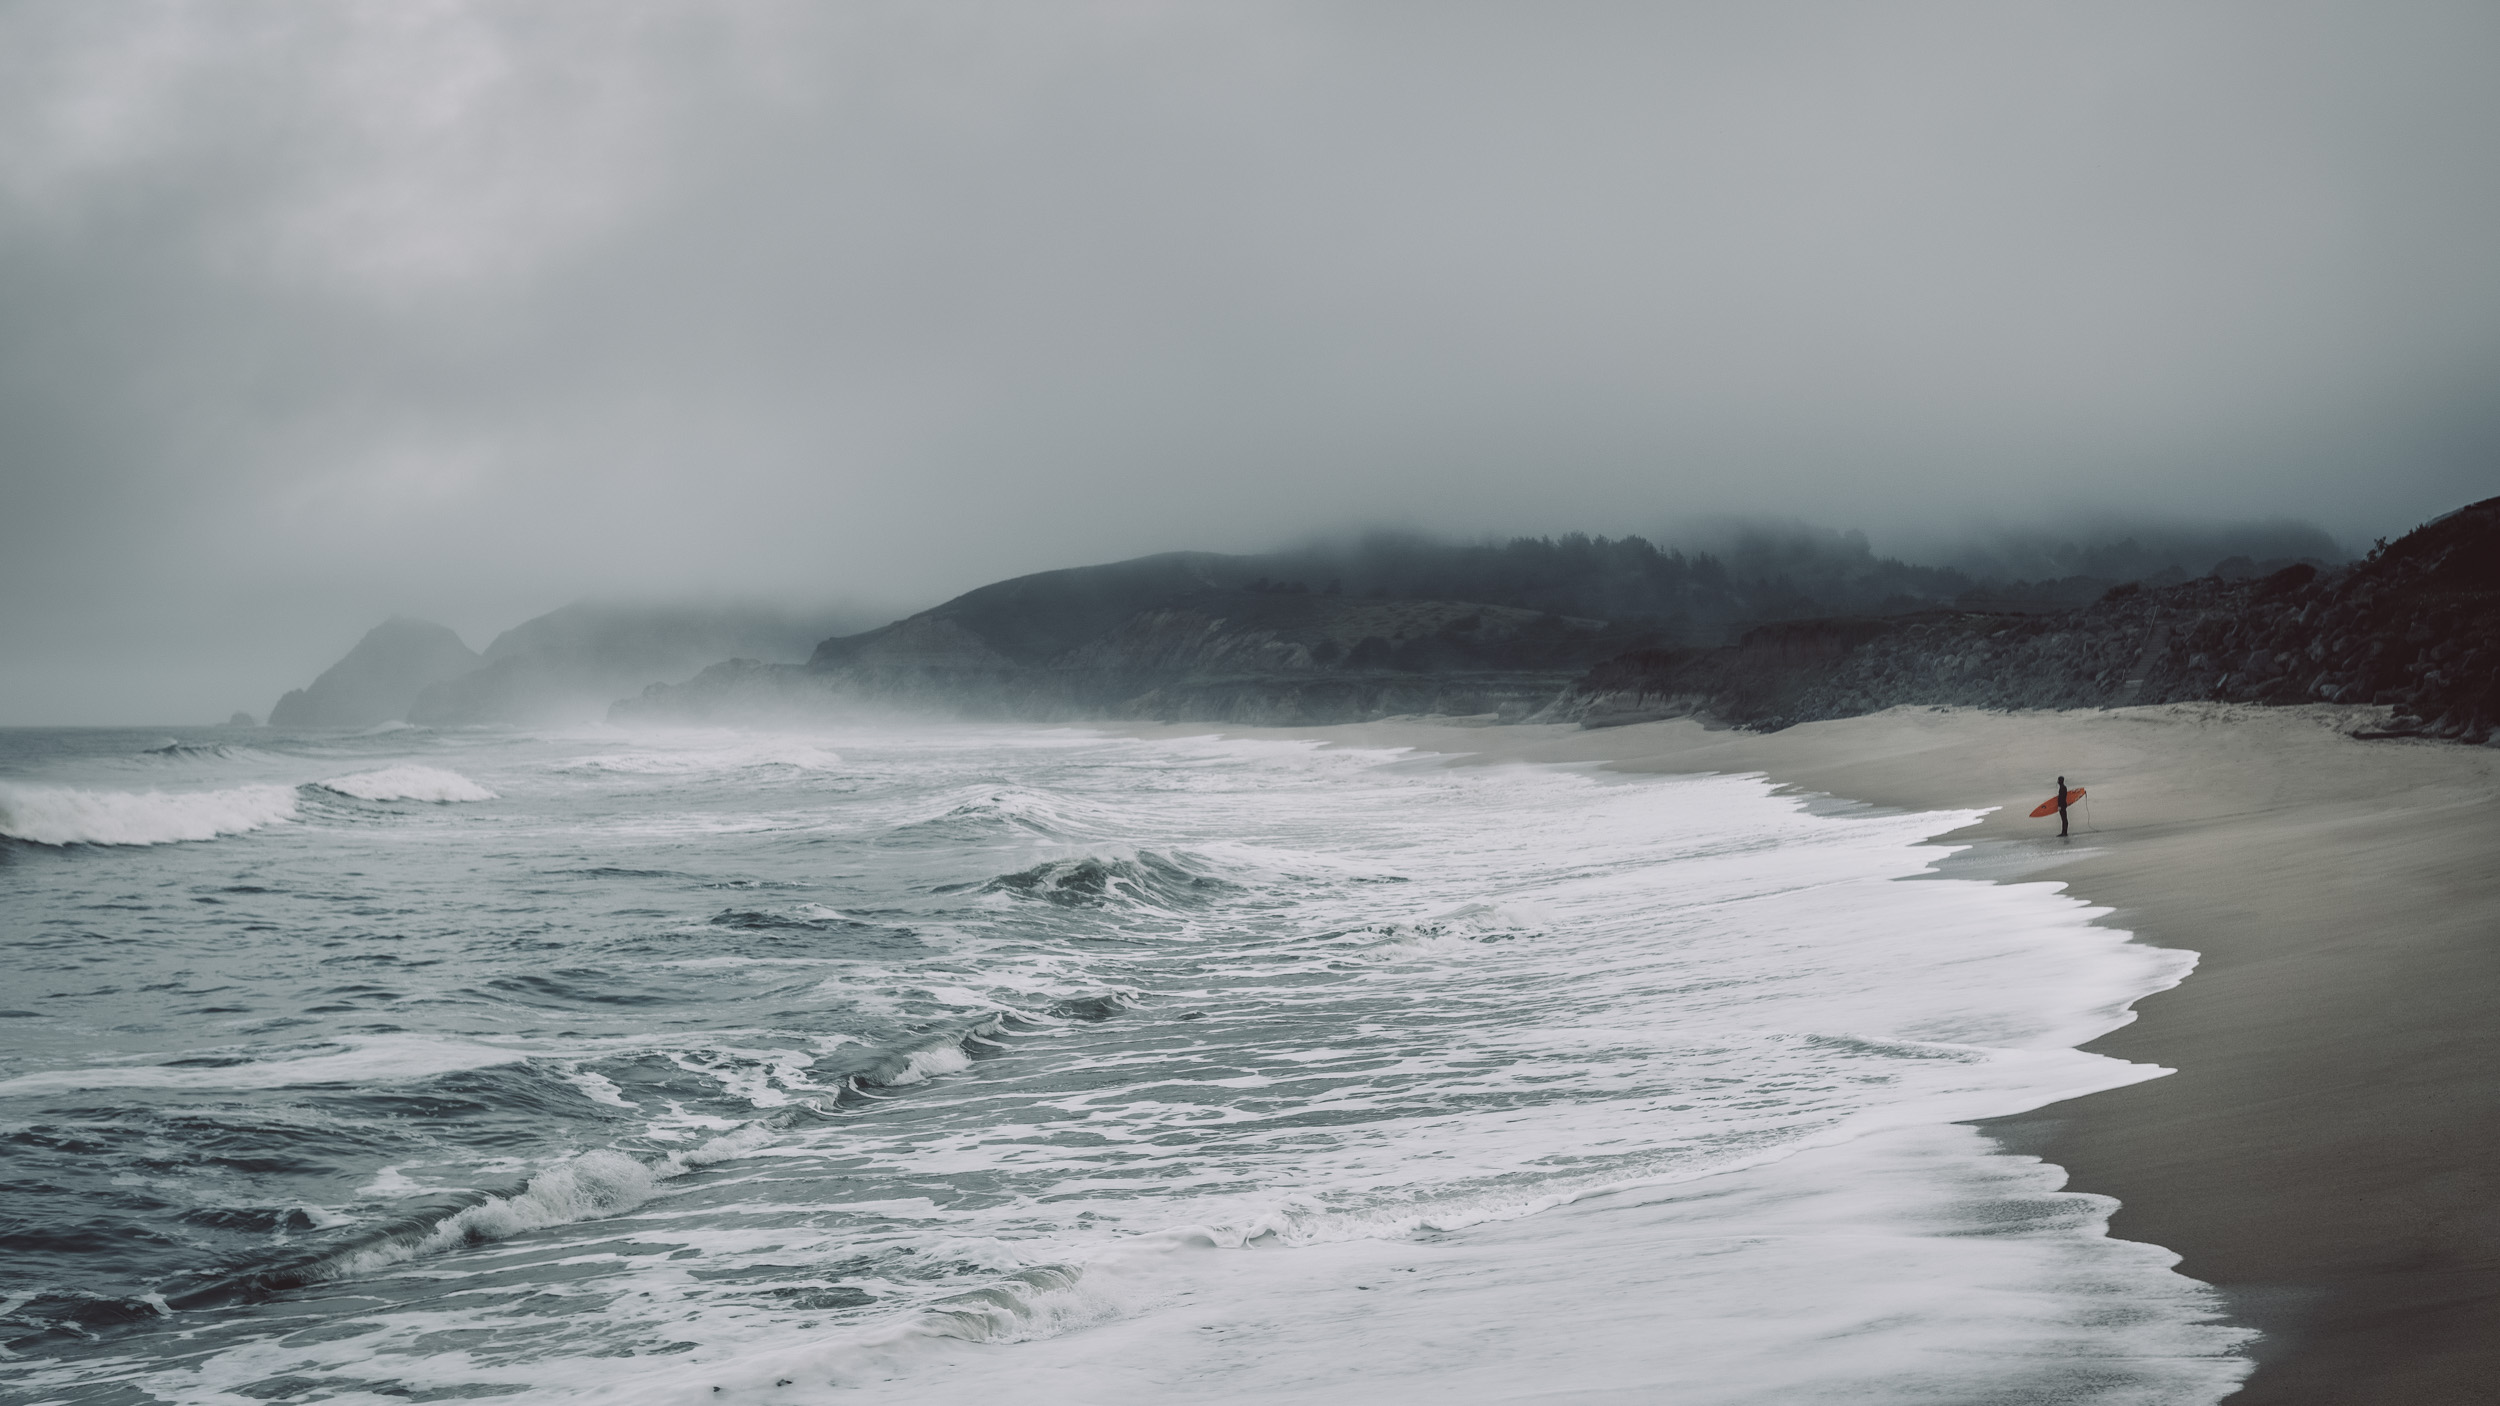 A lone male surfer with red surfboard stands on a wild and foggy beach with huge waves